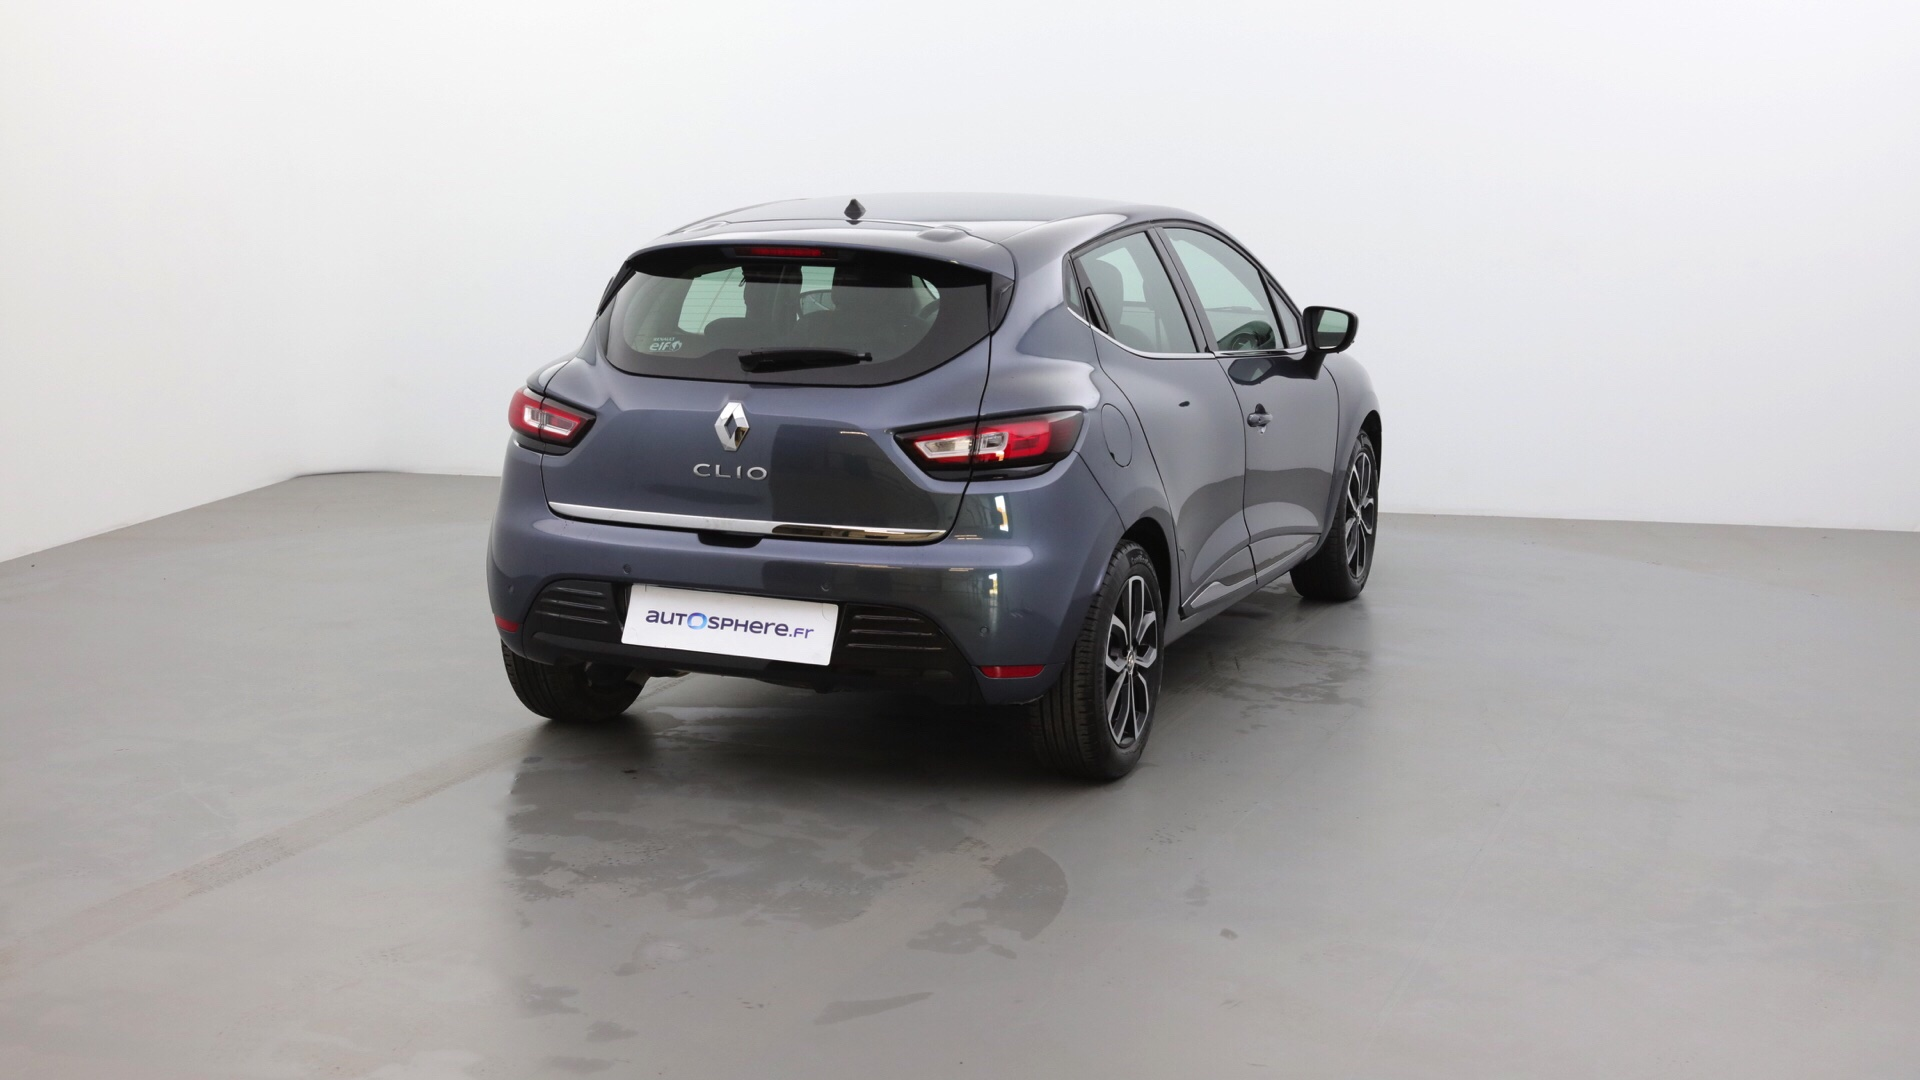 RENAULT CLIO 0.9 TCE 90CH ENERGY INTENS 5P - Miniature 5